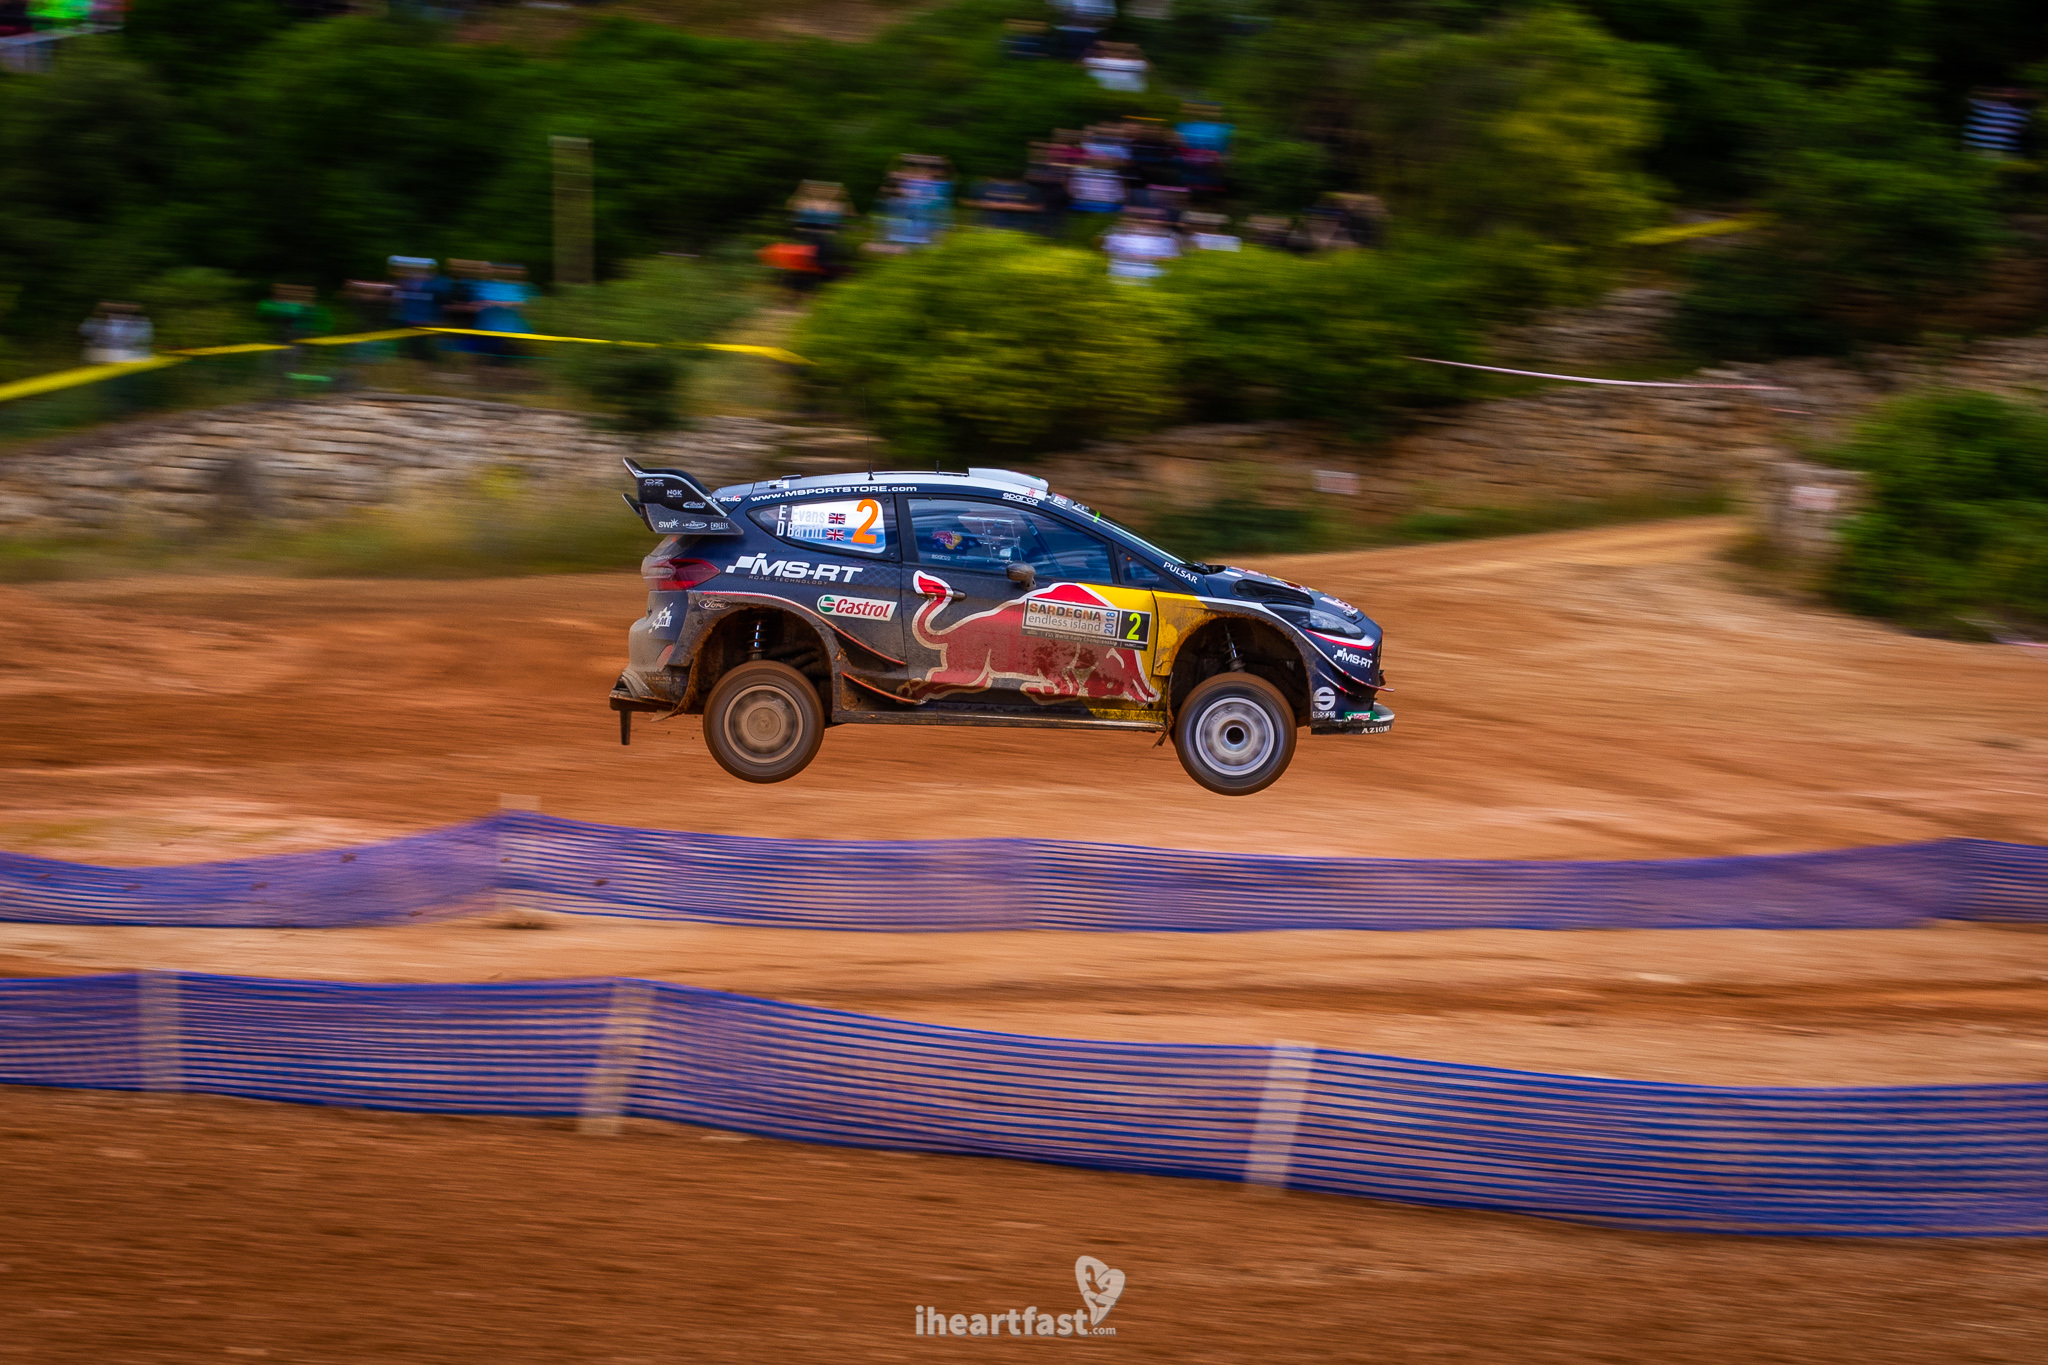 Elfyn Evans flying high at Rally Italia Sardegna